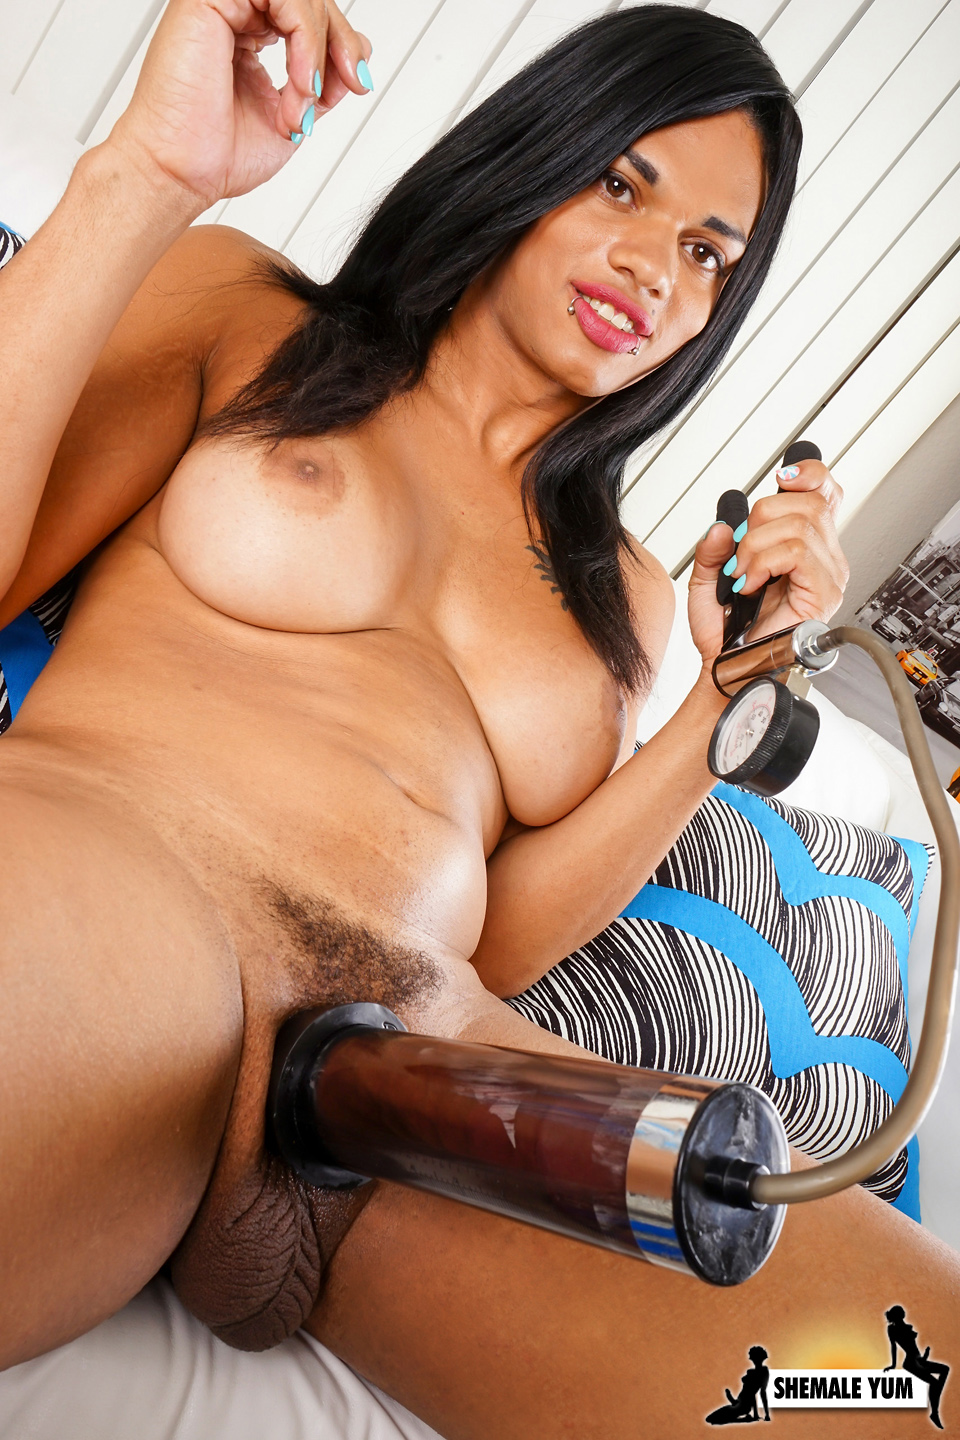 Shemale with penis pump